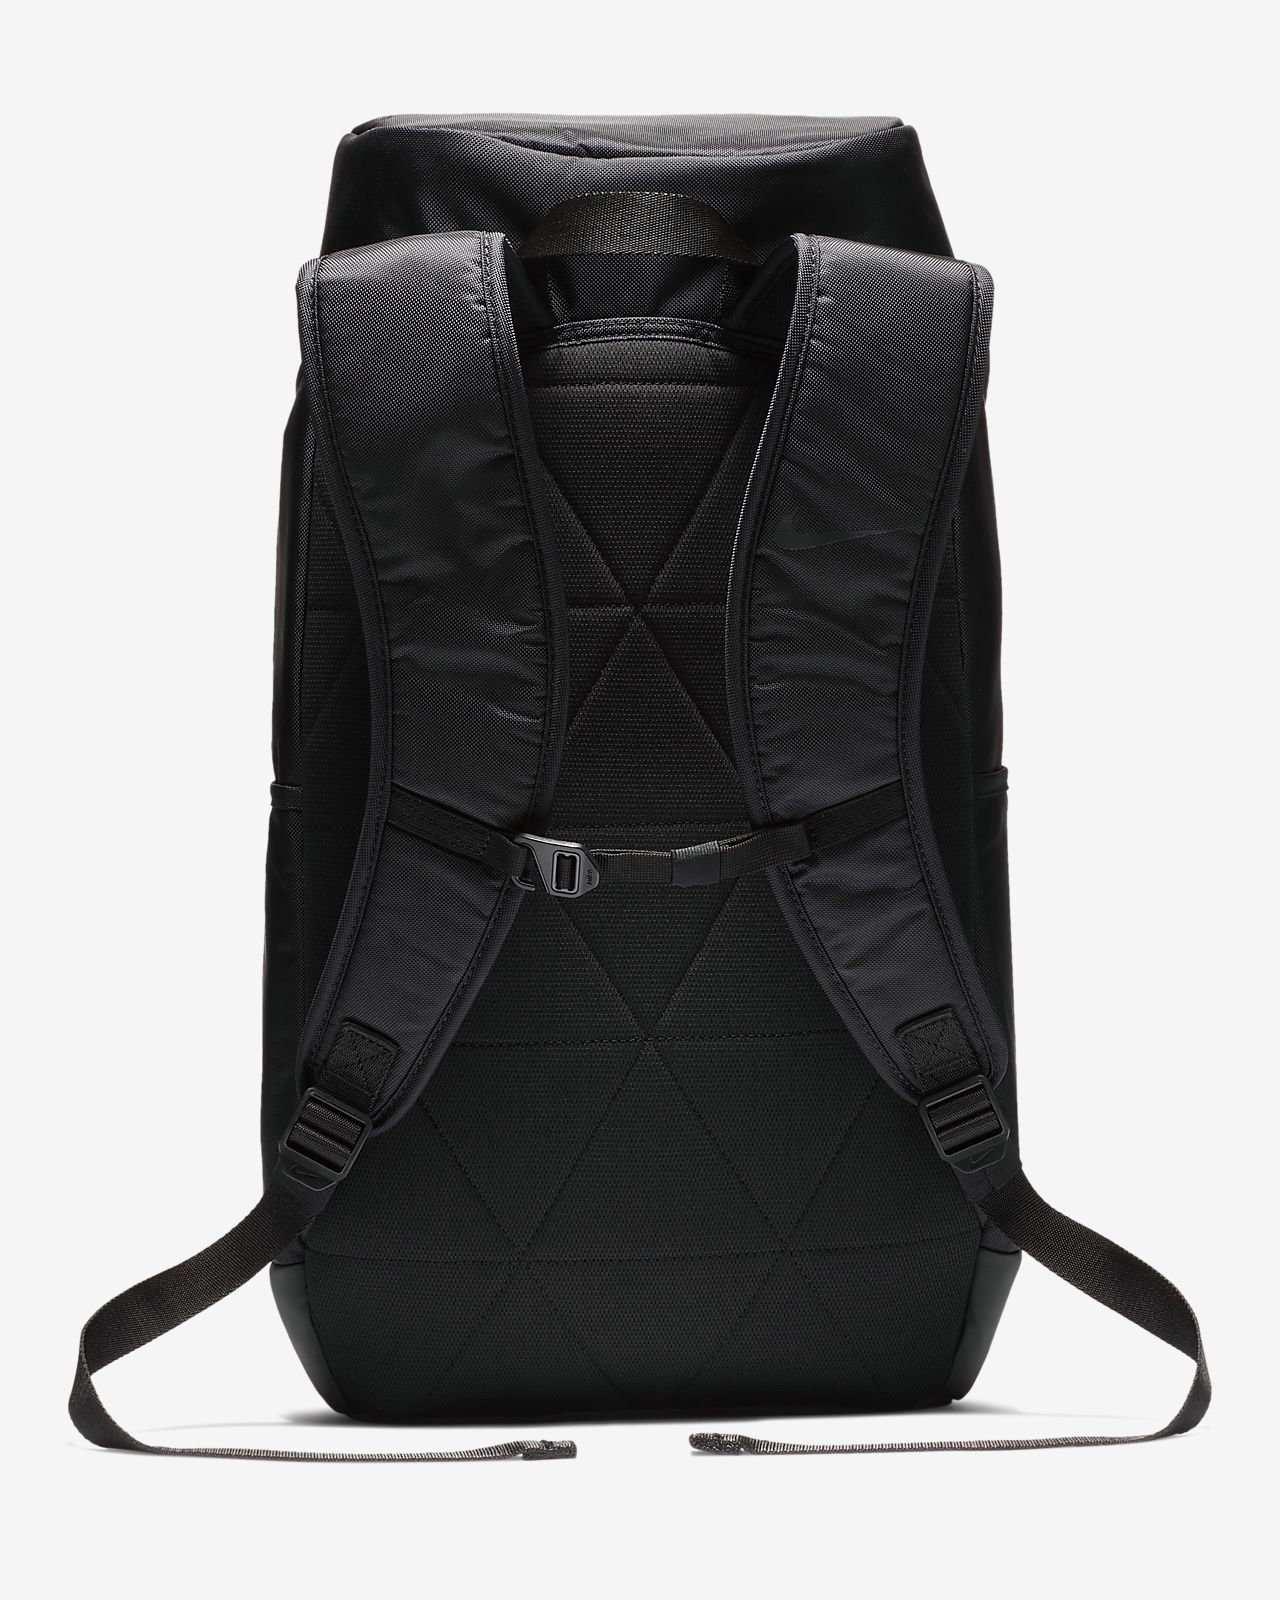 bd4905a1bb8 Nike Vapor Speed 2.0 Training Backpack. Nike.com